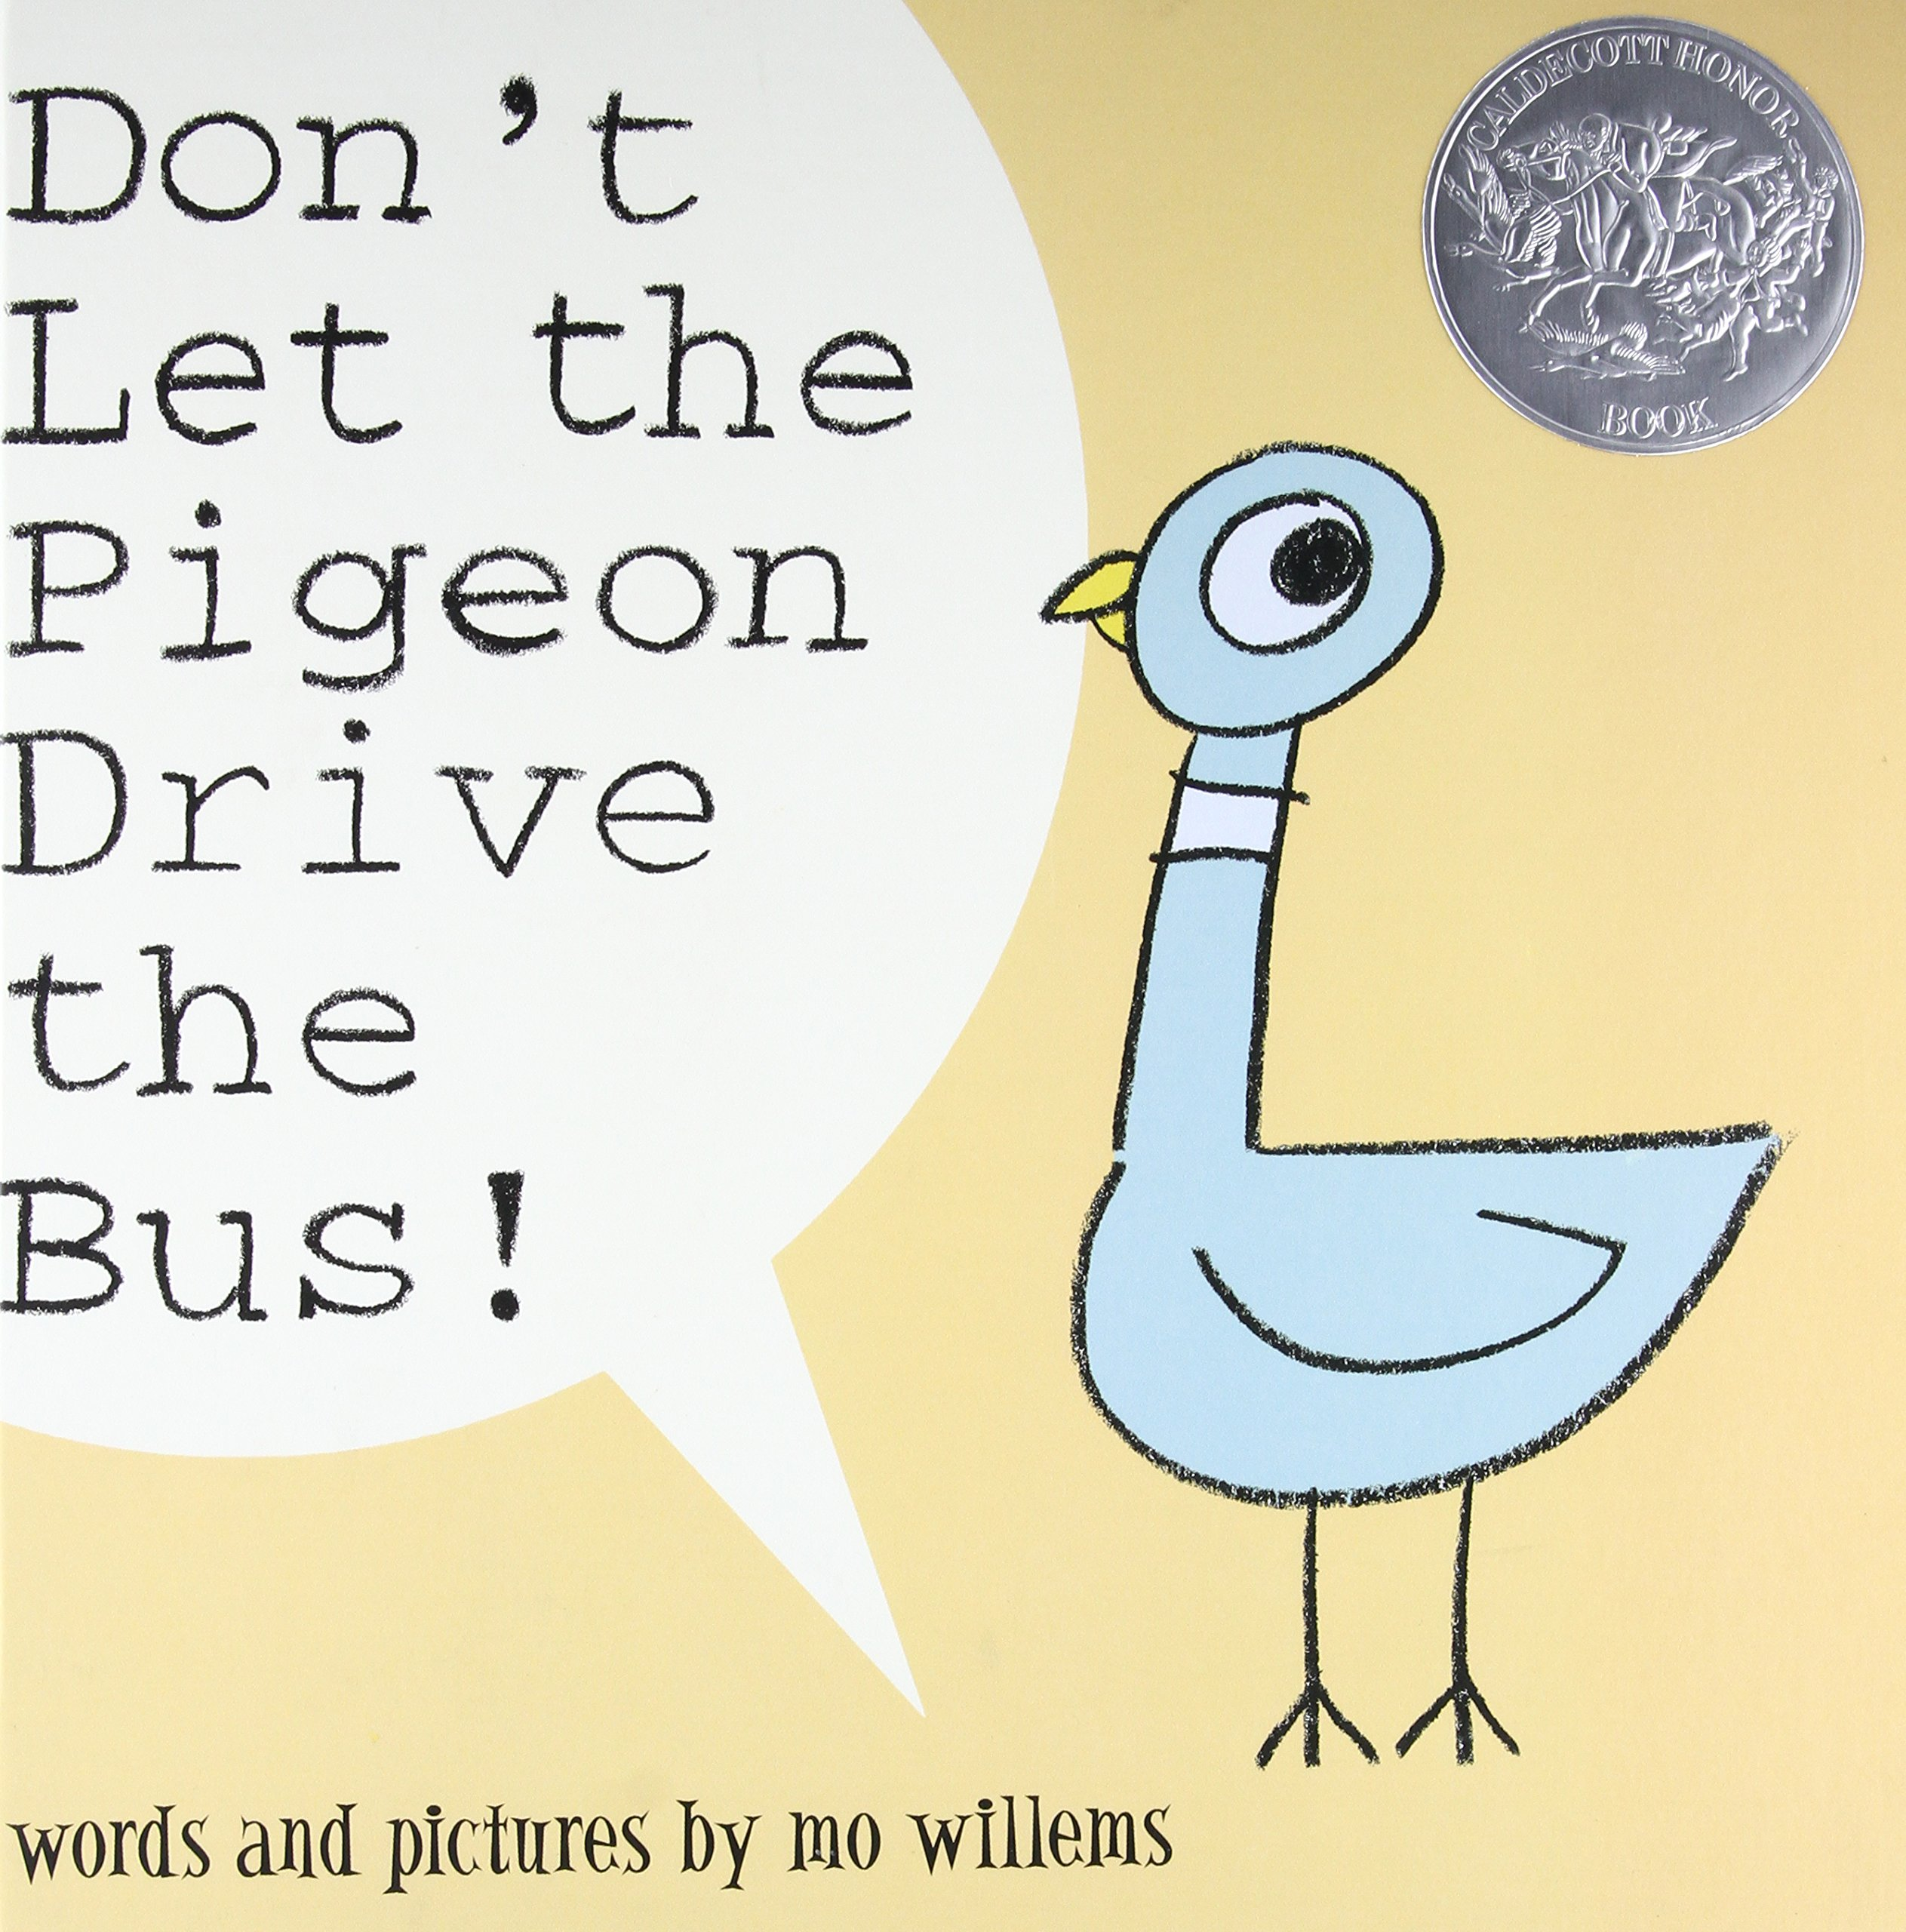 Don?t Let the Pigeon Drive the Bus